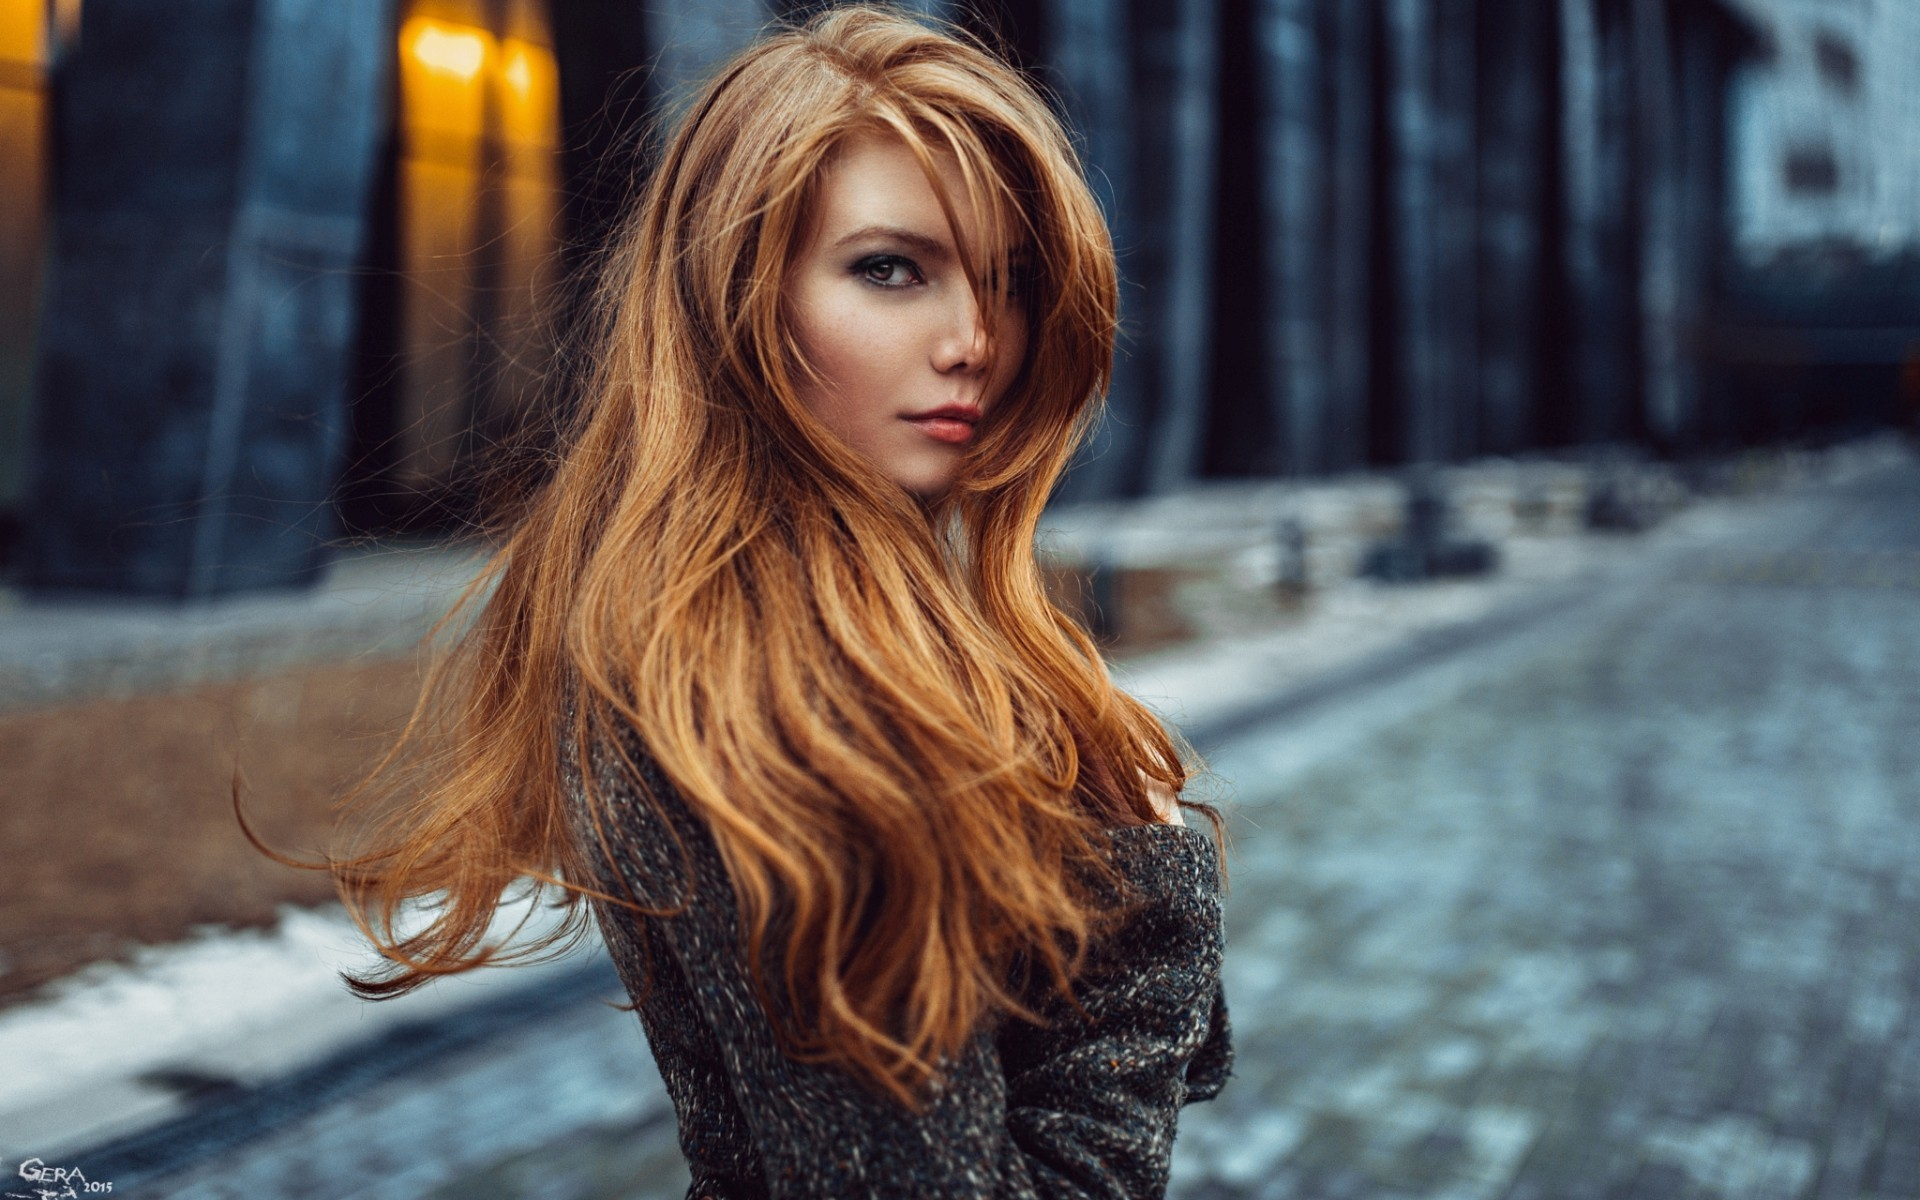 Explore Gorgeous Redhead, Redhead Girl, and more!